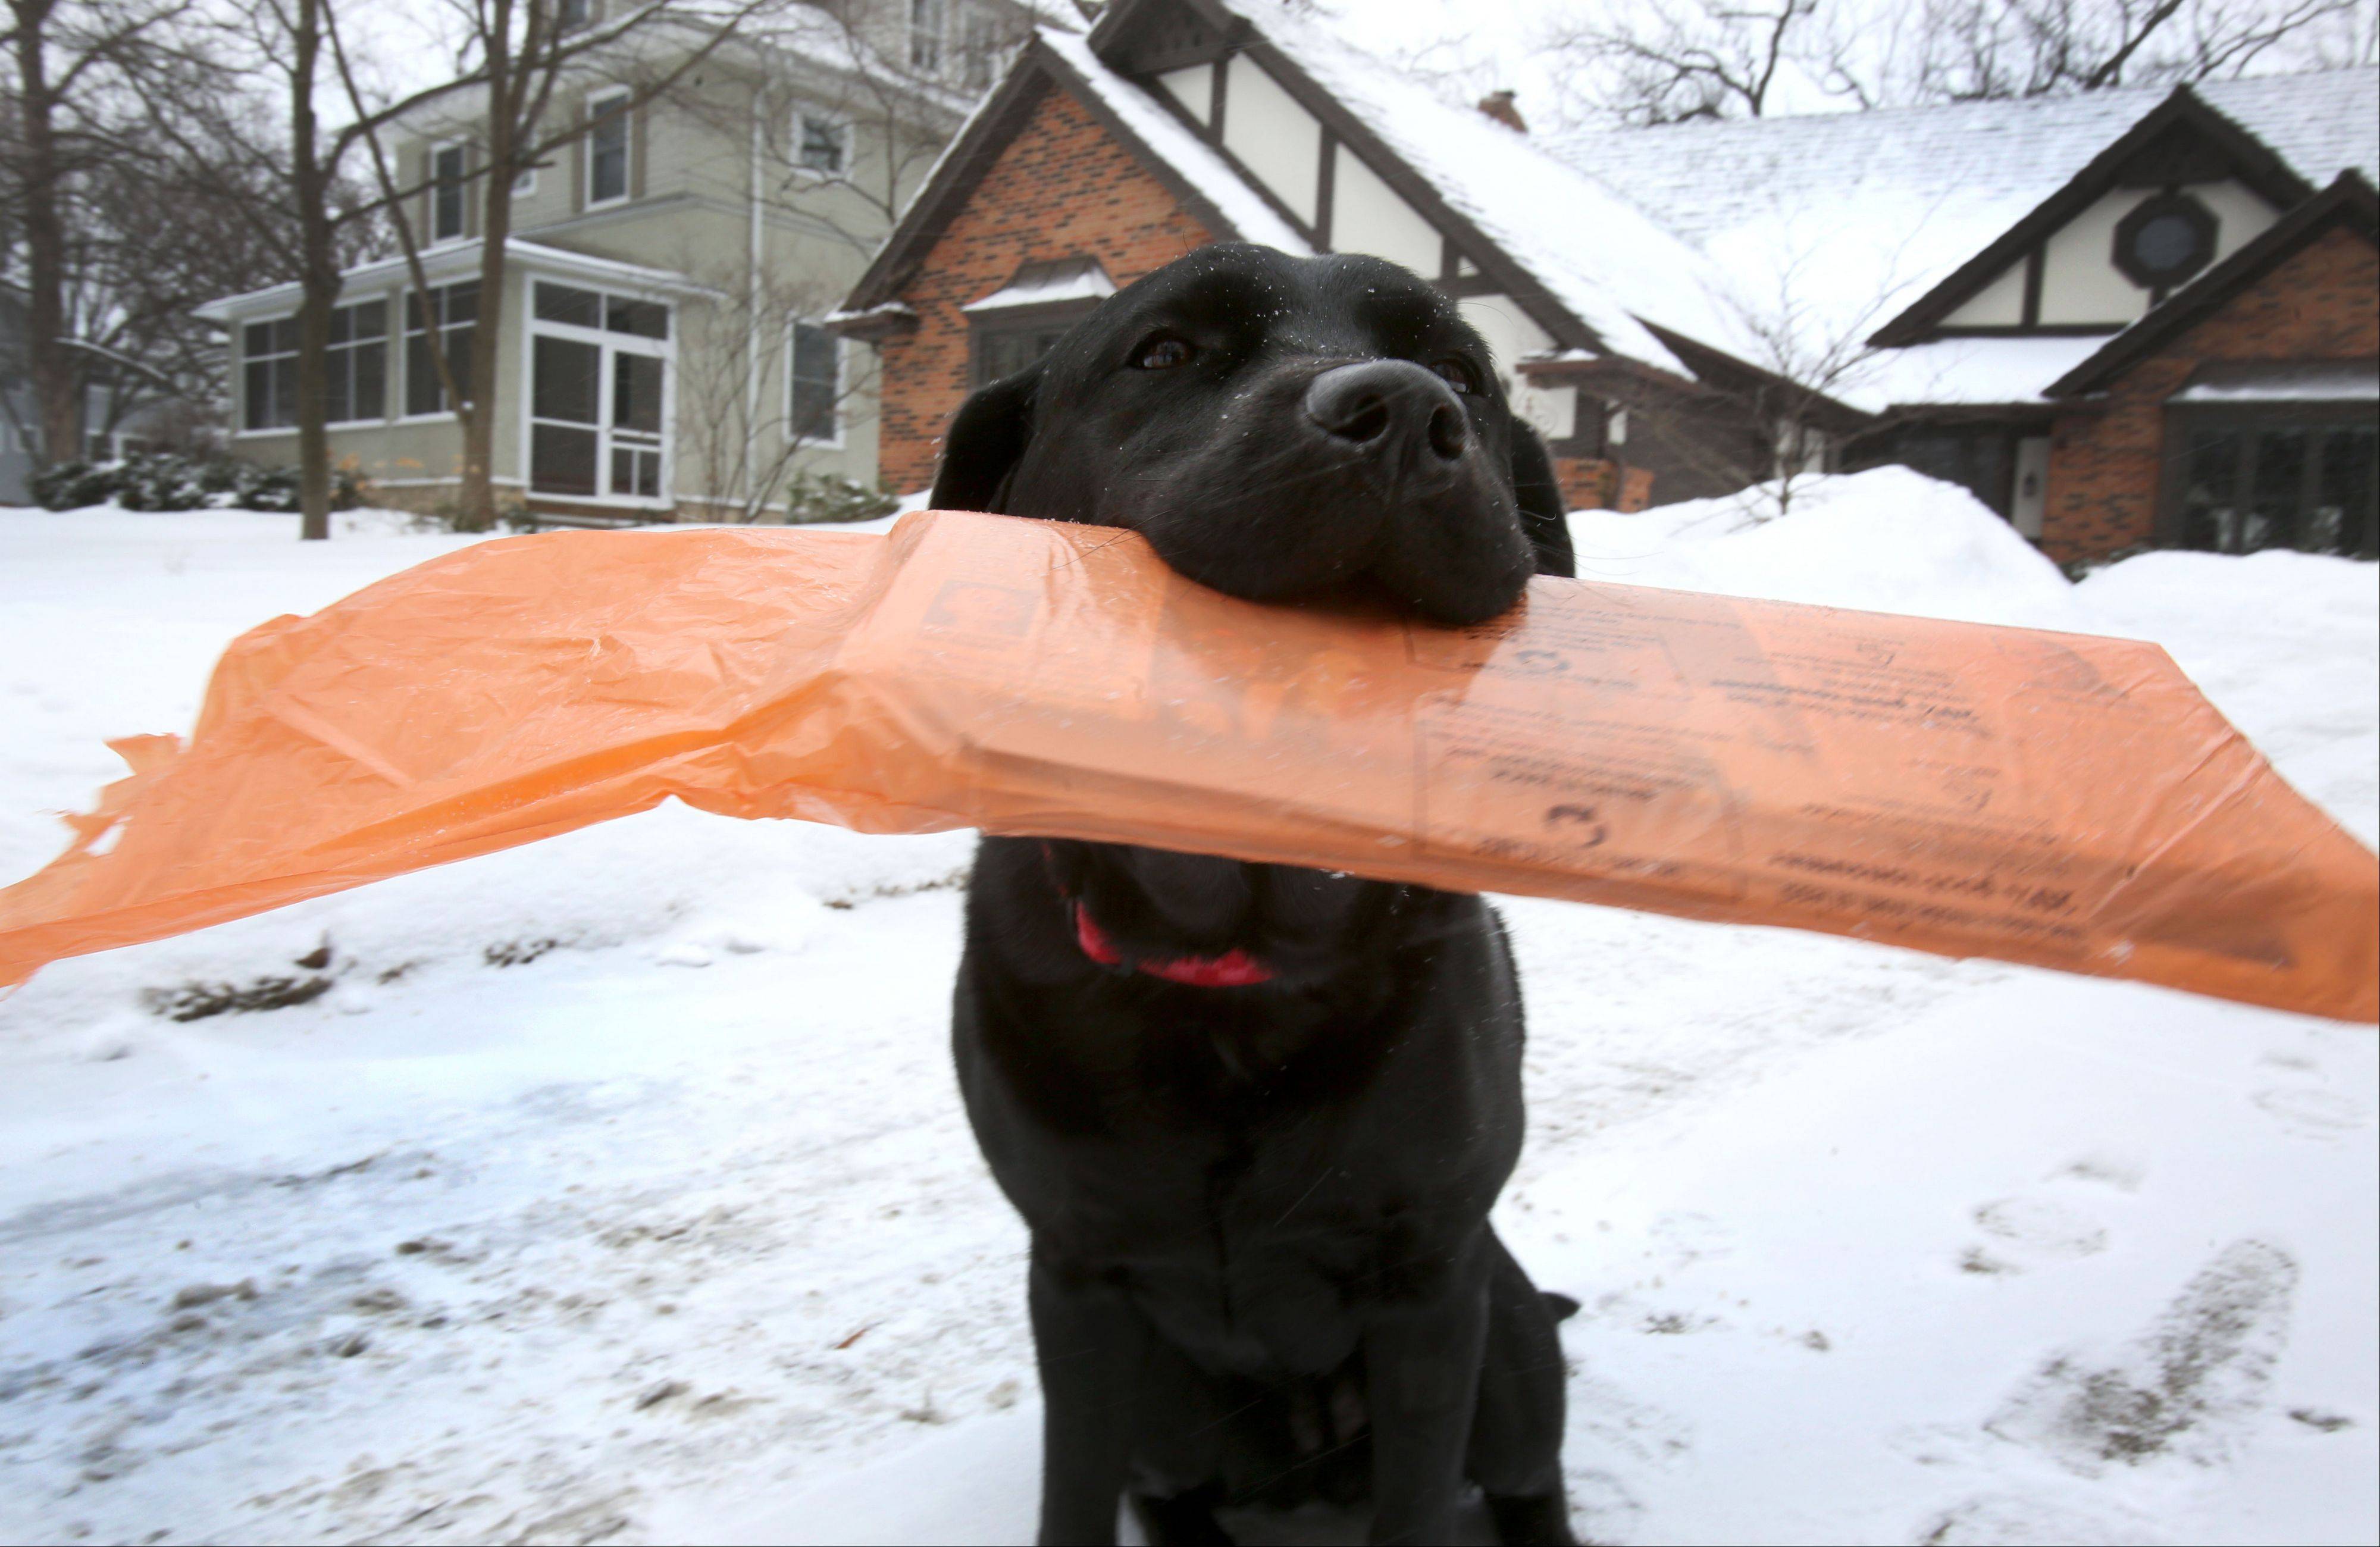 No matter the snow totals or wind chills, Morgan, a 3-year-old black English Labrador, can be counted on to fetch the Daily Herald for the Guse family in Glen Ellyn. Having picked up the job as a puppy, Morgan also delivers the paper to a couple of neighbors.